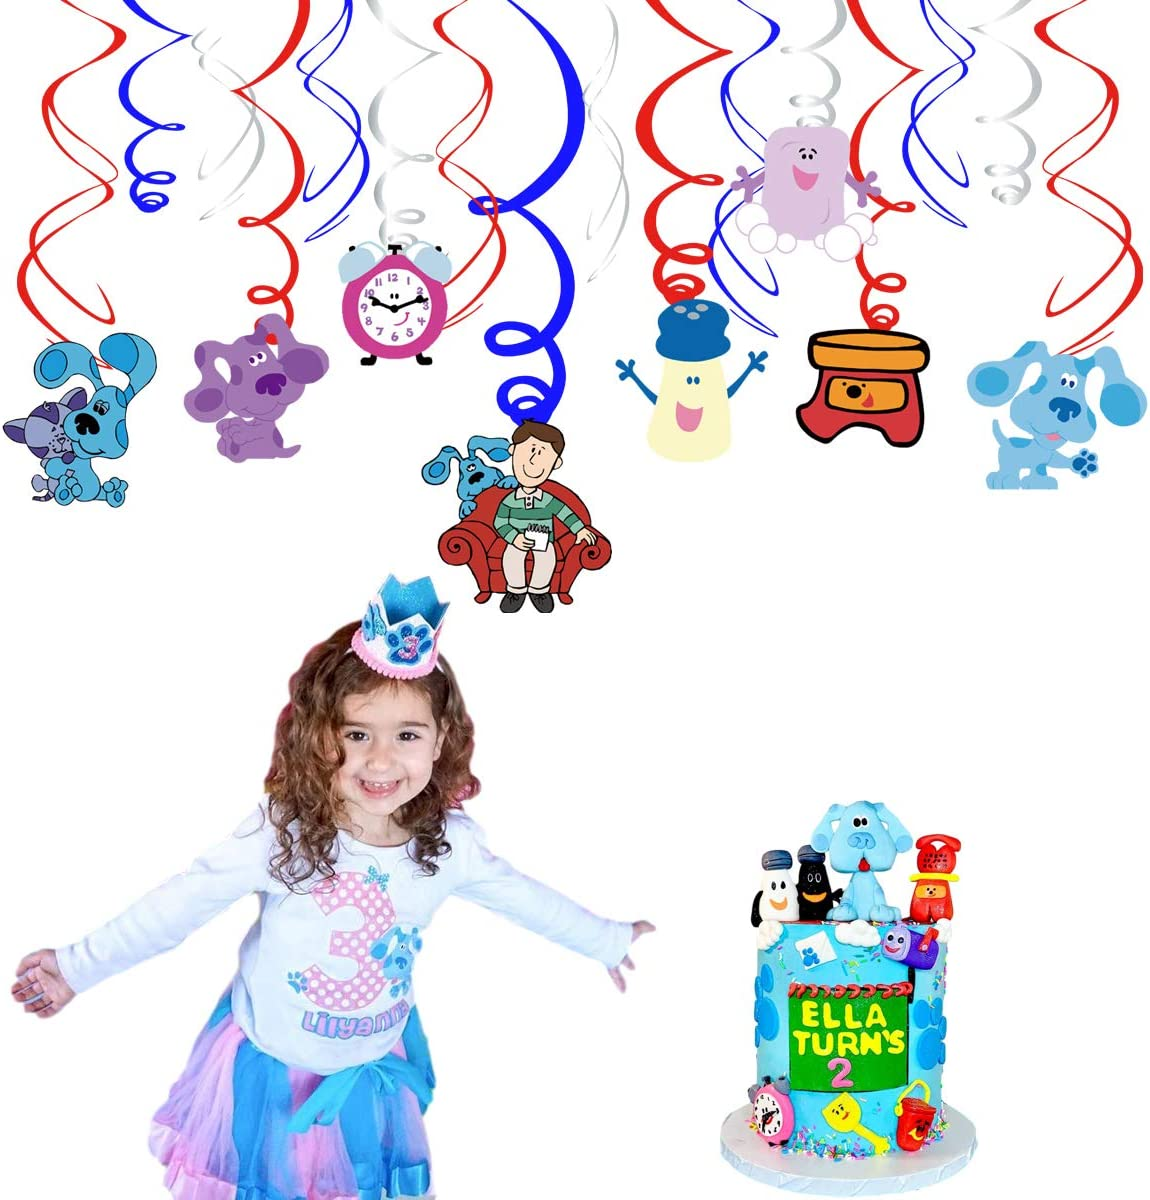 blues clues Theme Hanging Swirl Ceiling Decoration Ribbon Party Supplies 30 pcs blues clues Party Swirl Decoration